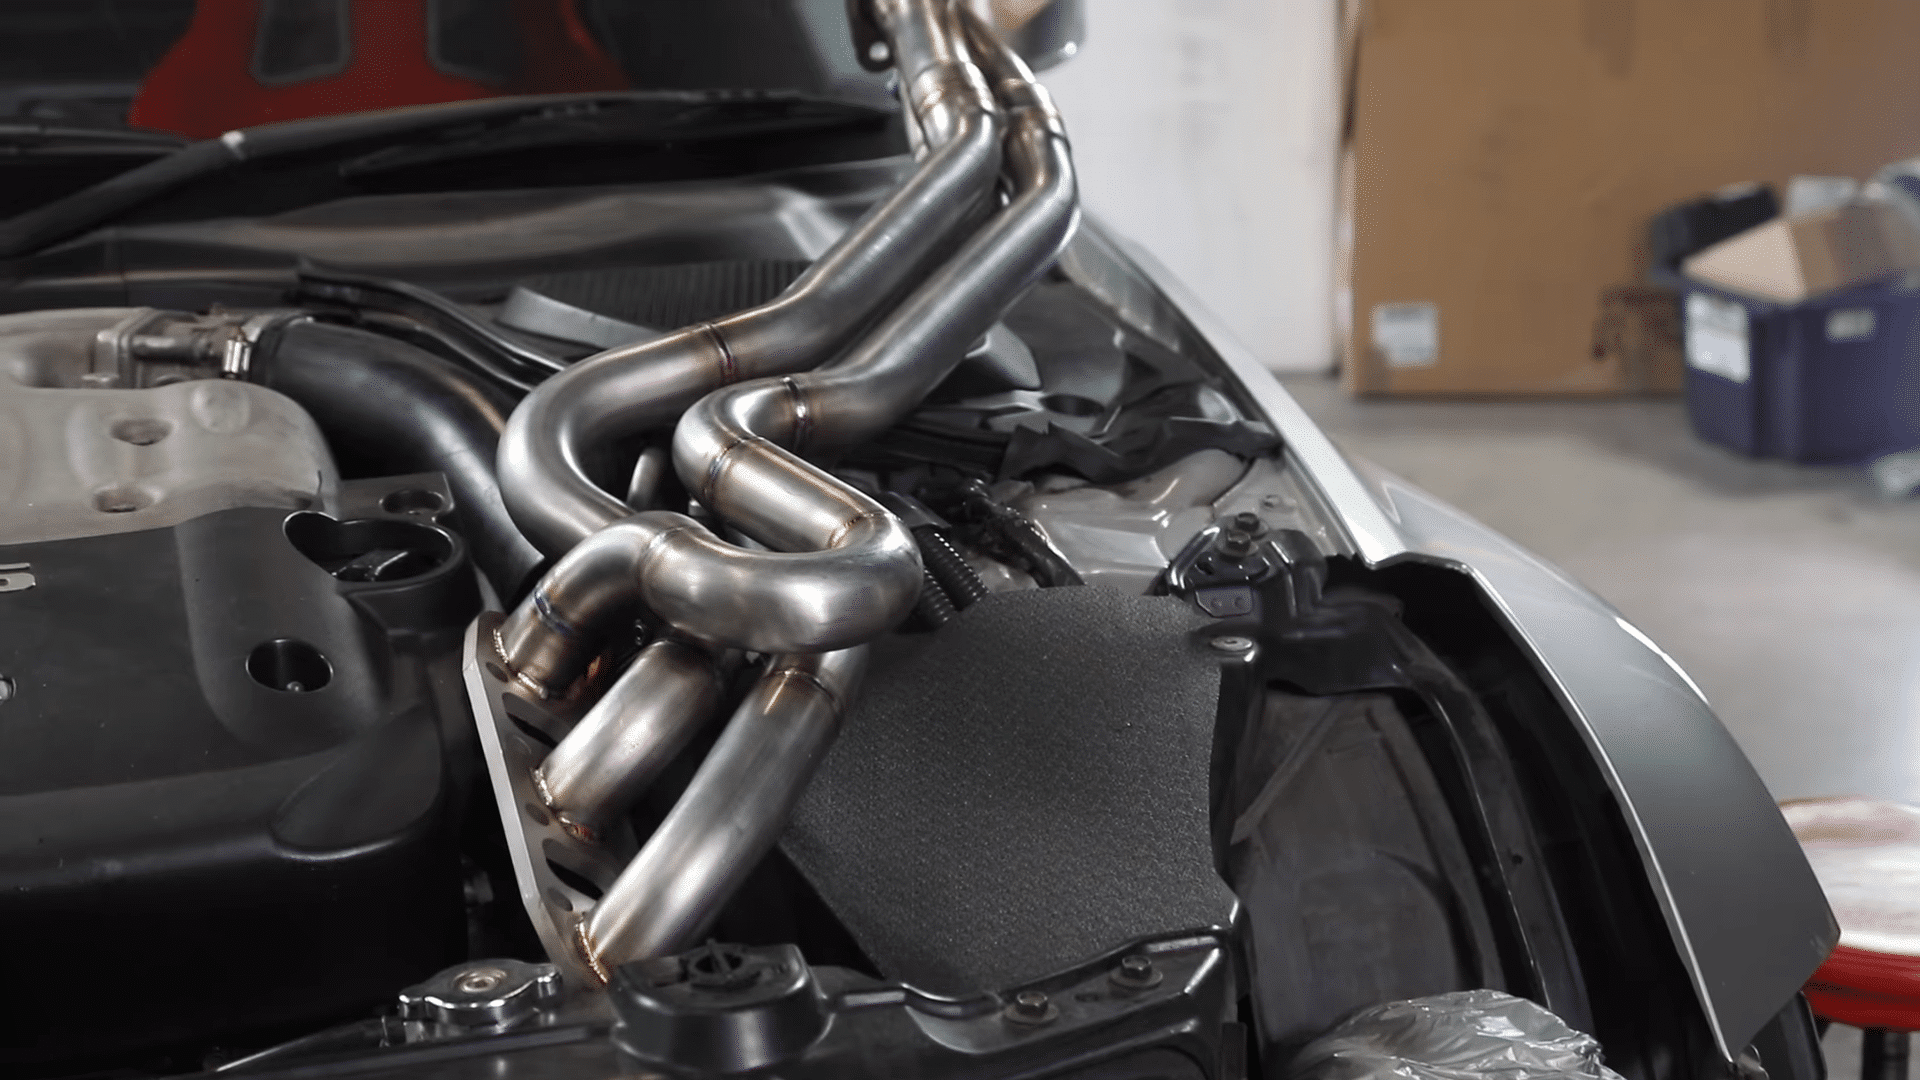 Ppe Aftermarket Exhaust Headers The Ultimate 350z Mod